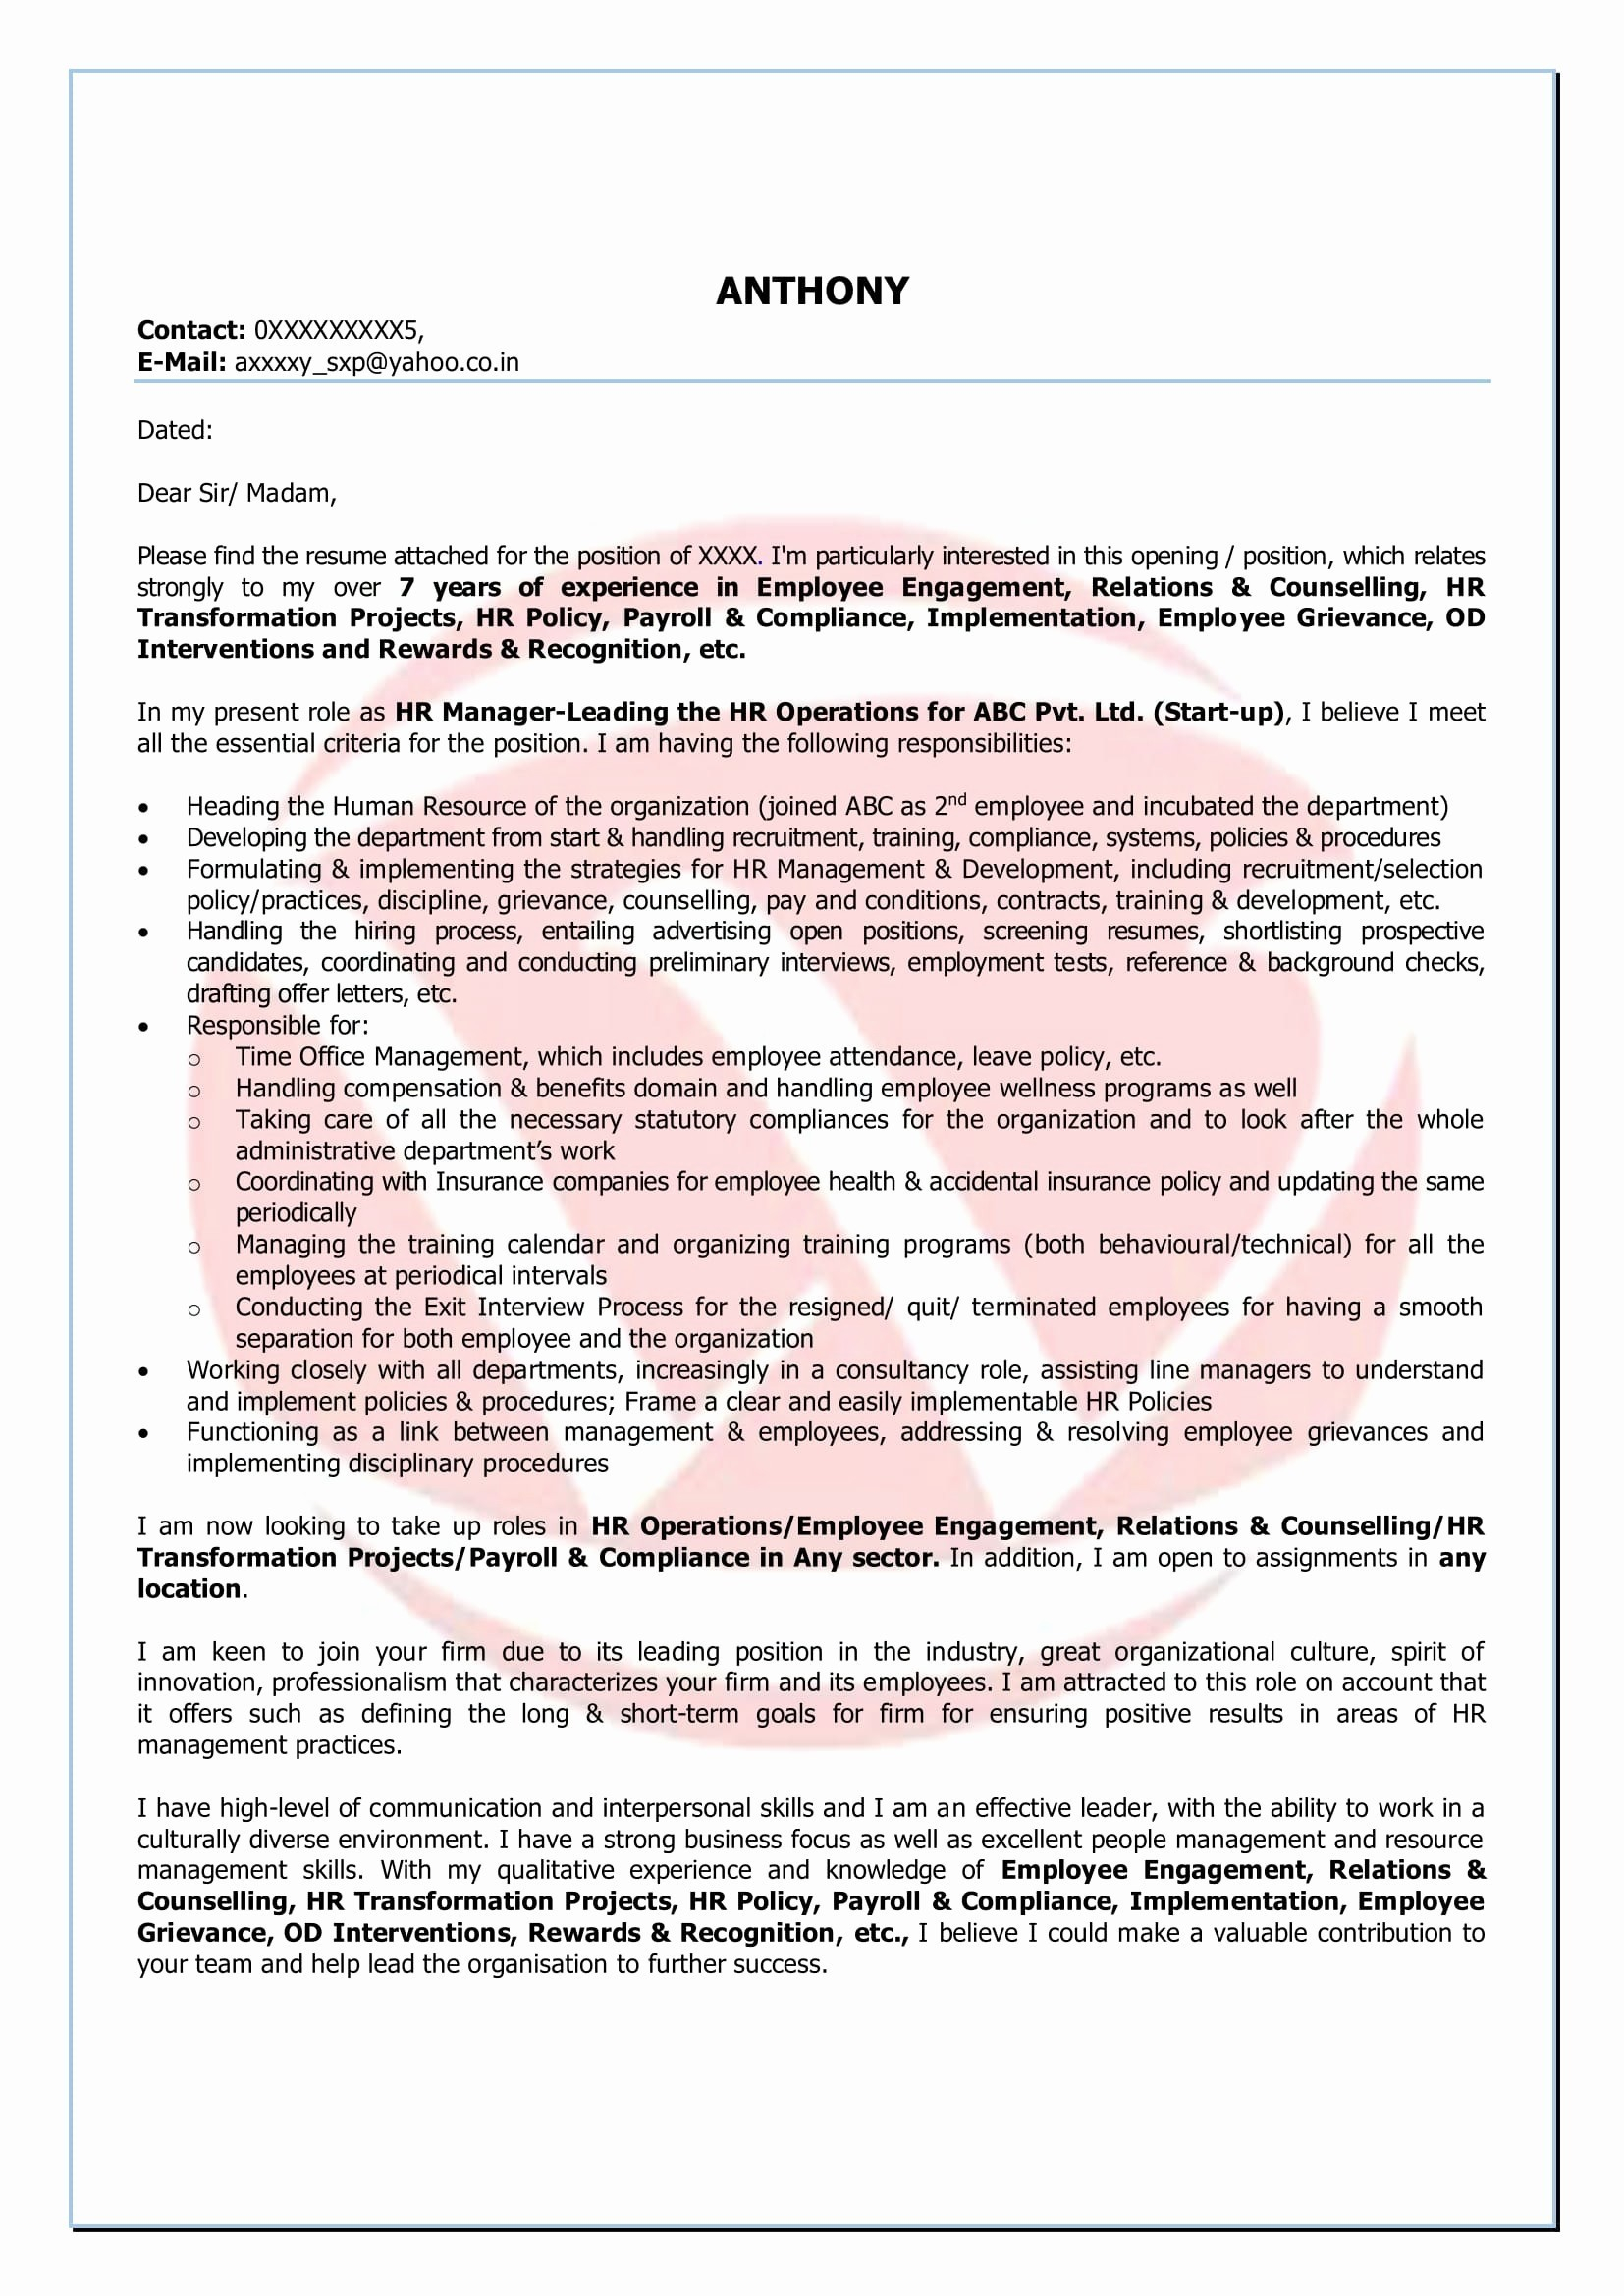 Electrical Engineering Resume Entry Level - 16 Awesome Entry Level software Engineer Resume